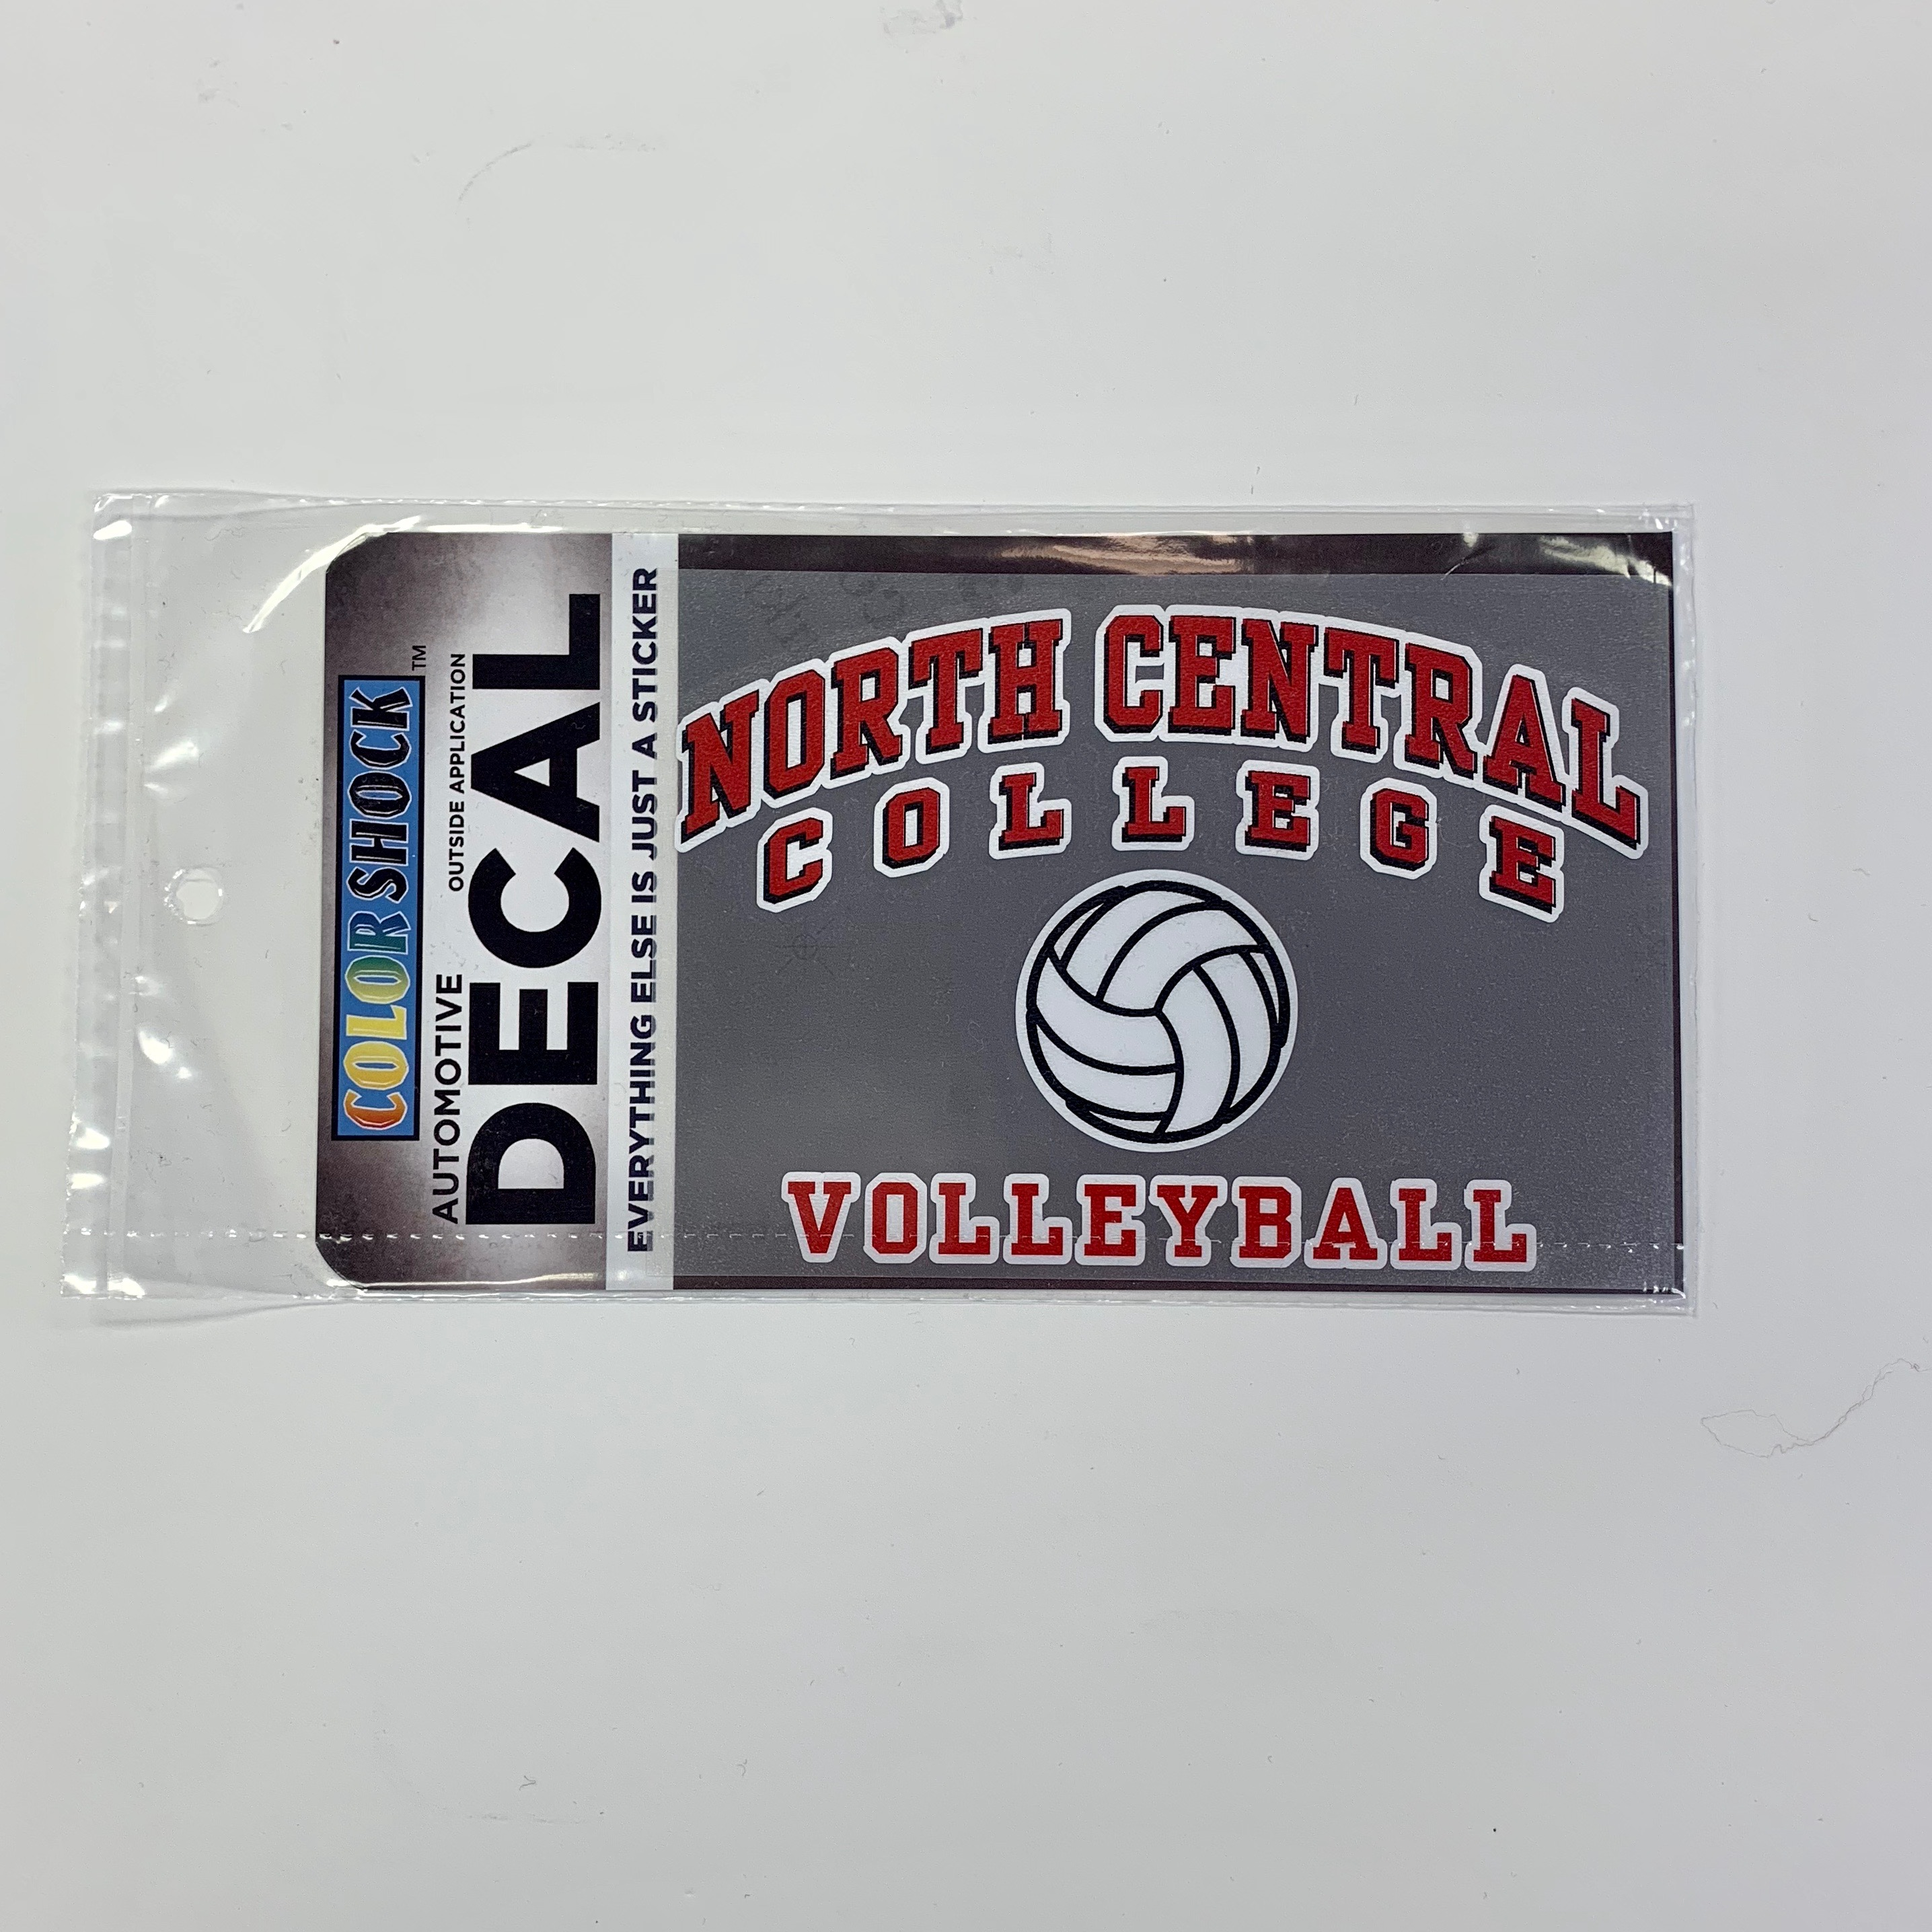 Image for the Volleyball Decal (ColorShock) product